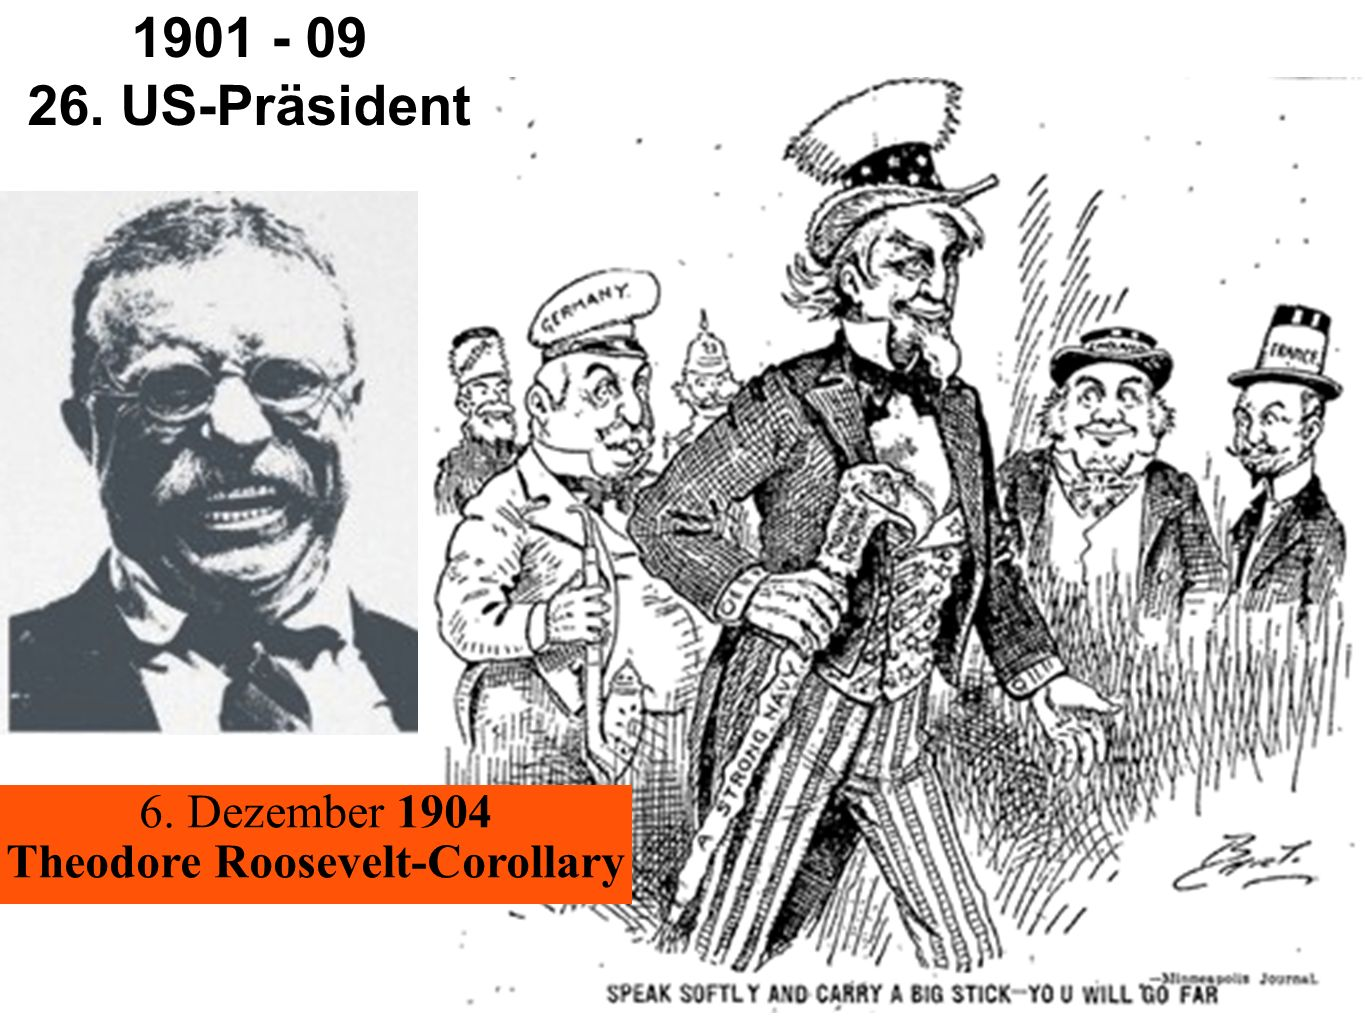 You will go far 1901 - 09 26. US-Präsident 6. Dezember 1904 Theodore Roosevelt-Corollary